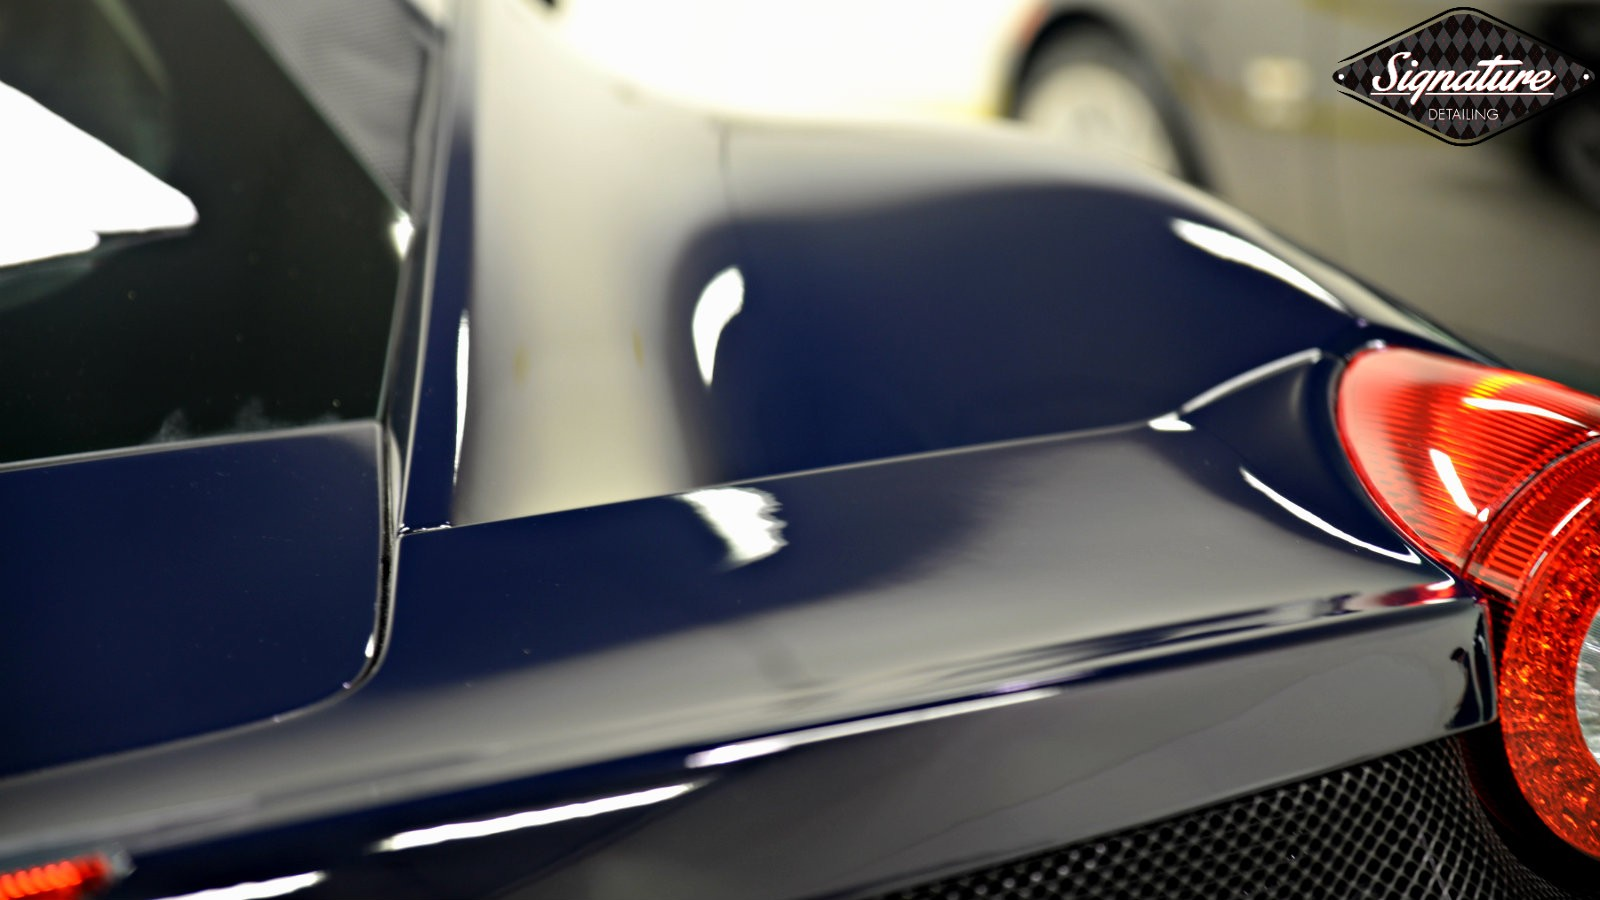 Car Paint Protection >> Signature Detailing - New Jersey's Premier Auto Detailer & PPF Installer